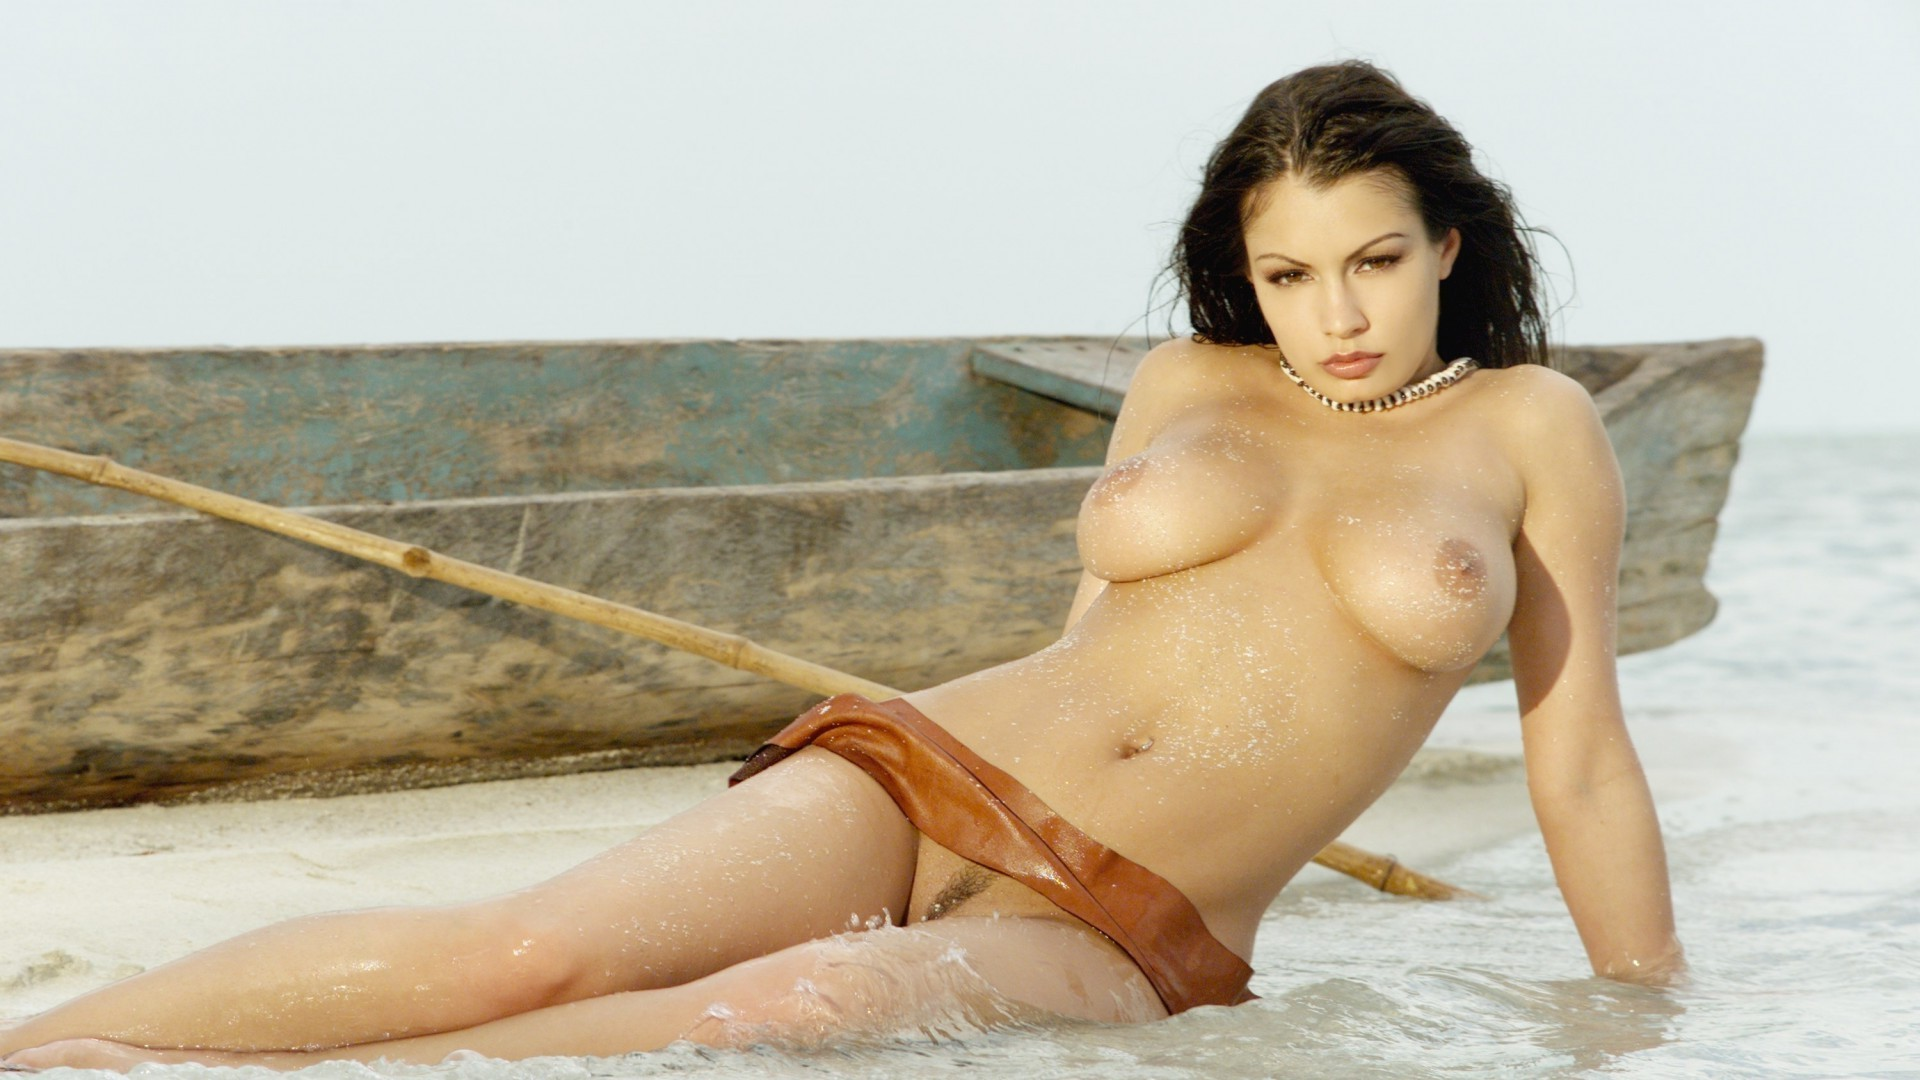 Brunette in the water near the boat